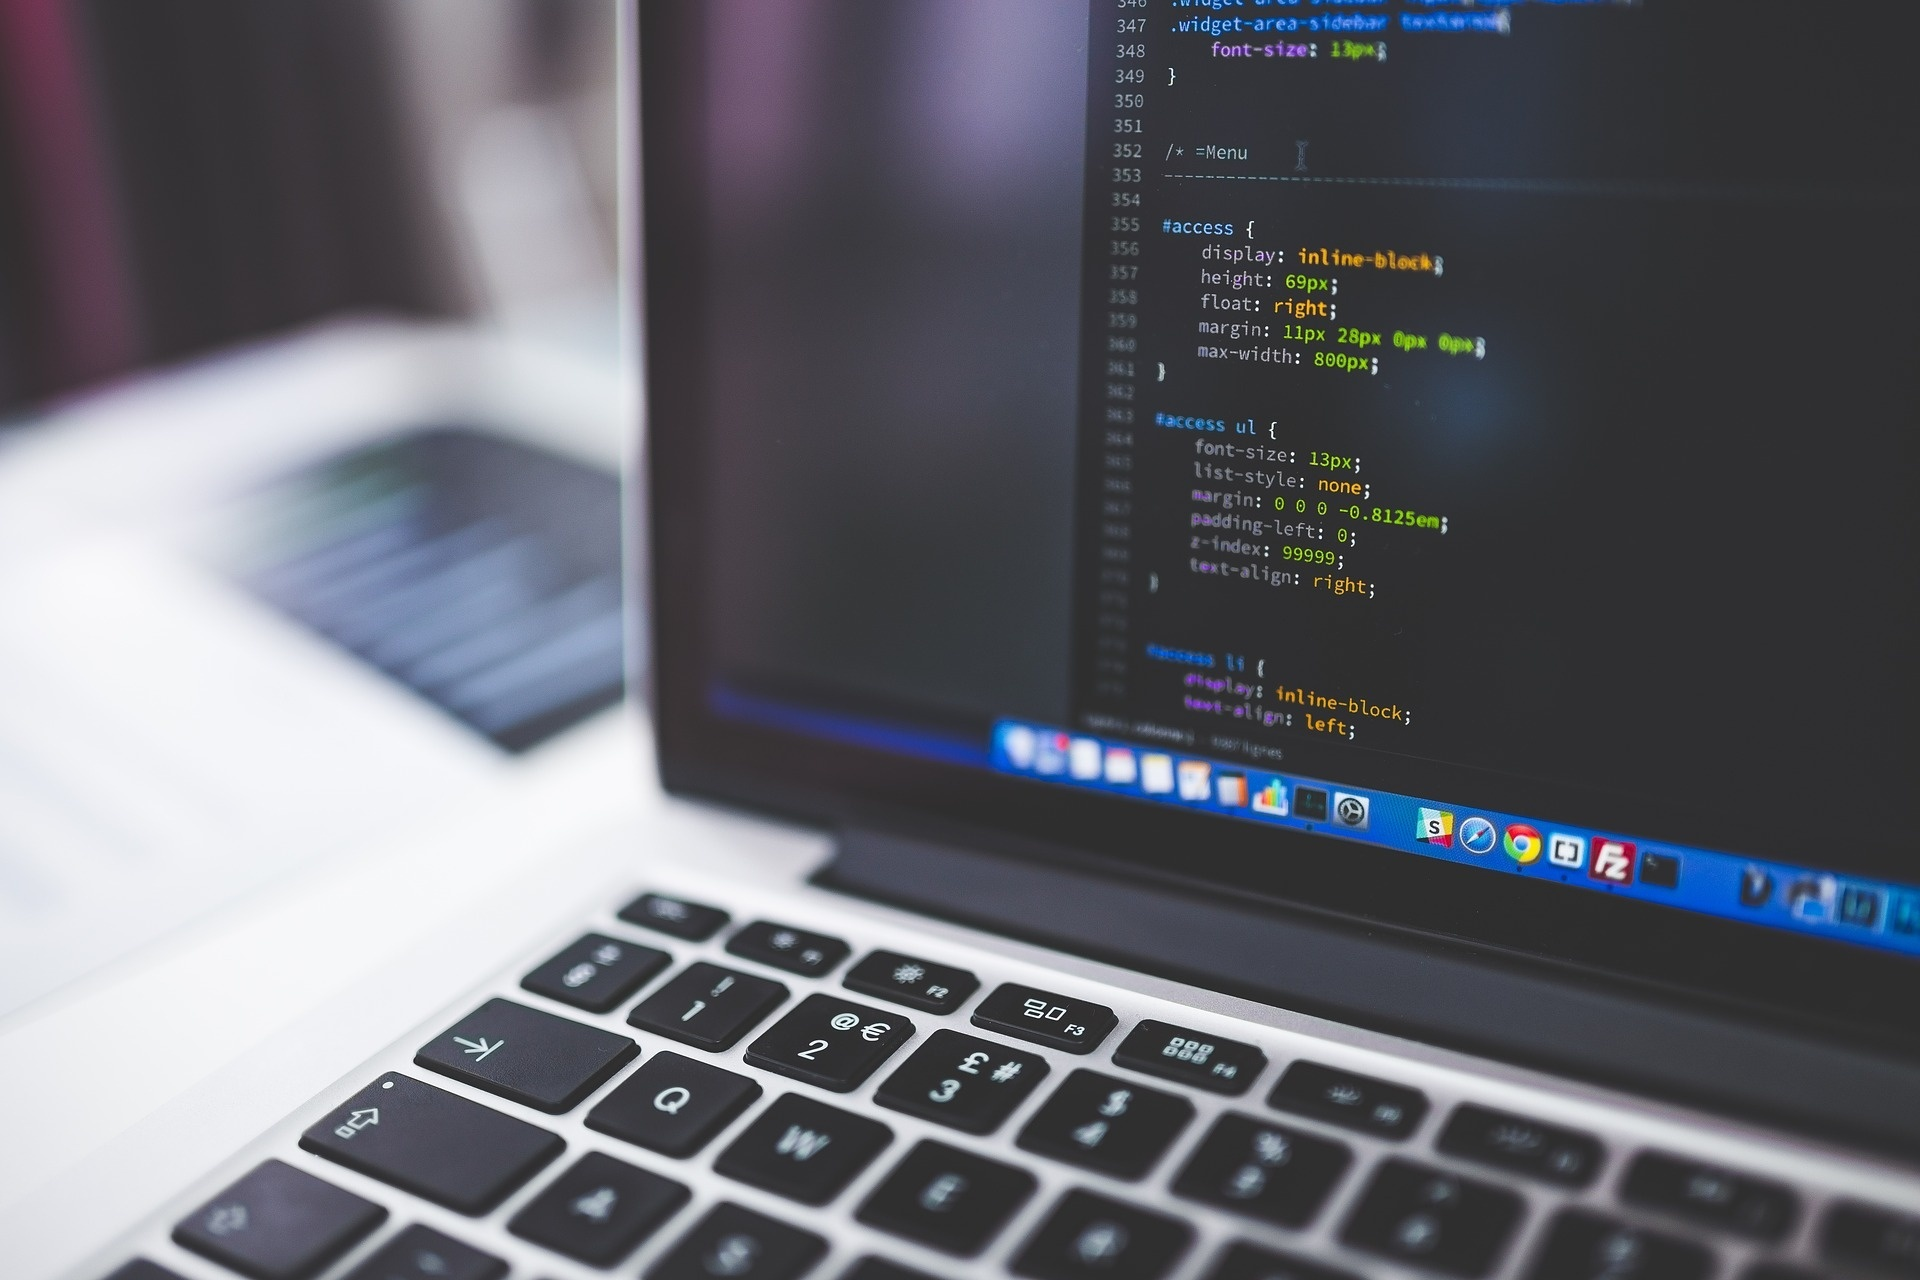 How to become a mobile application developer - Quora